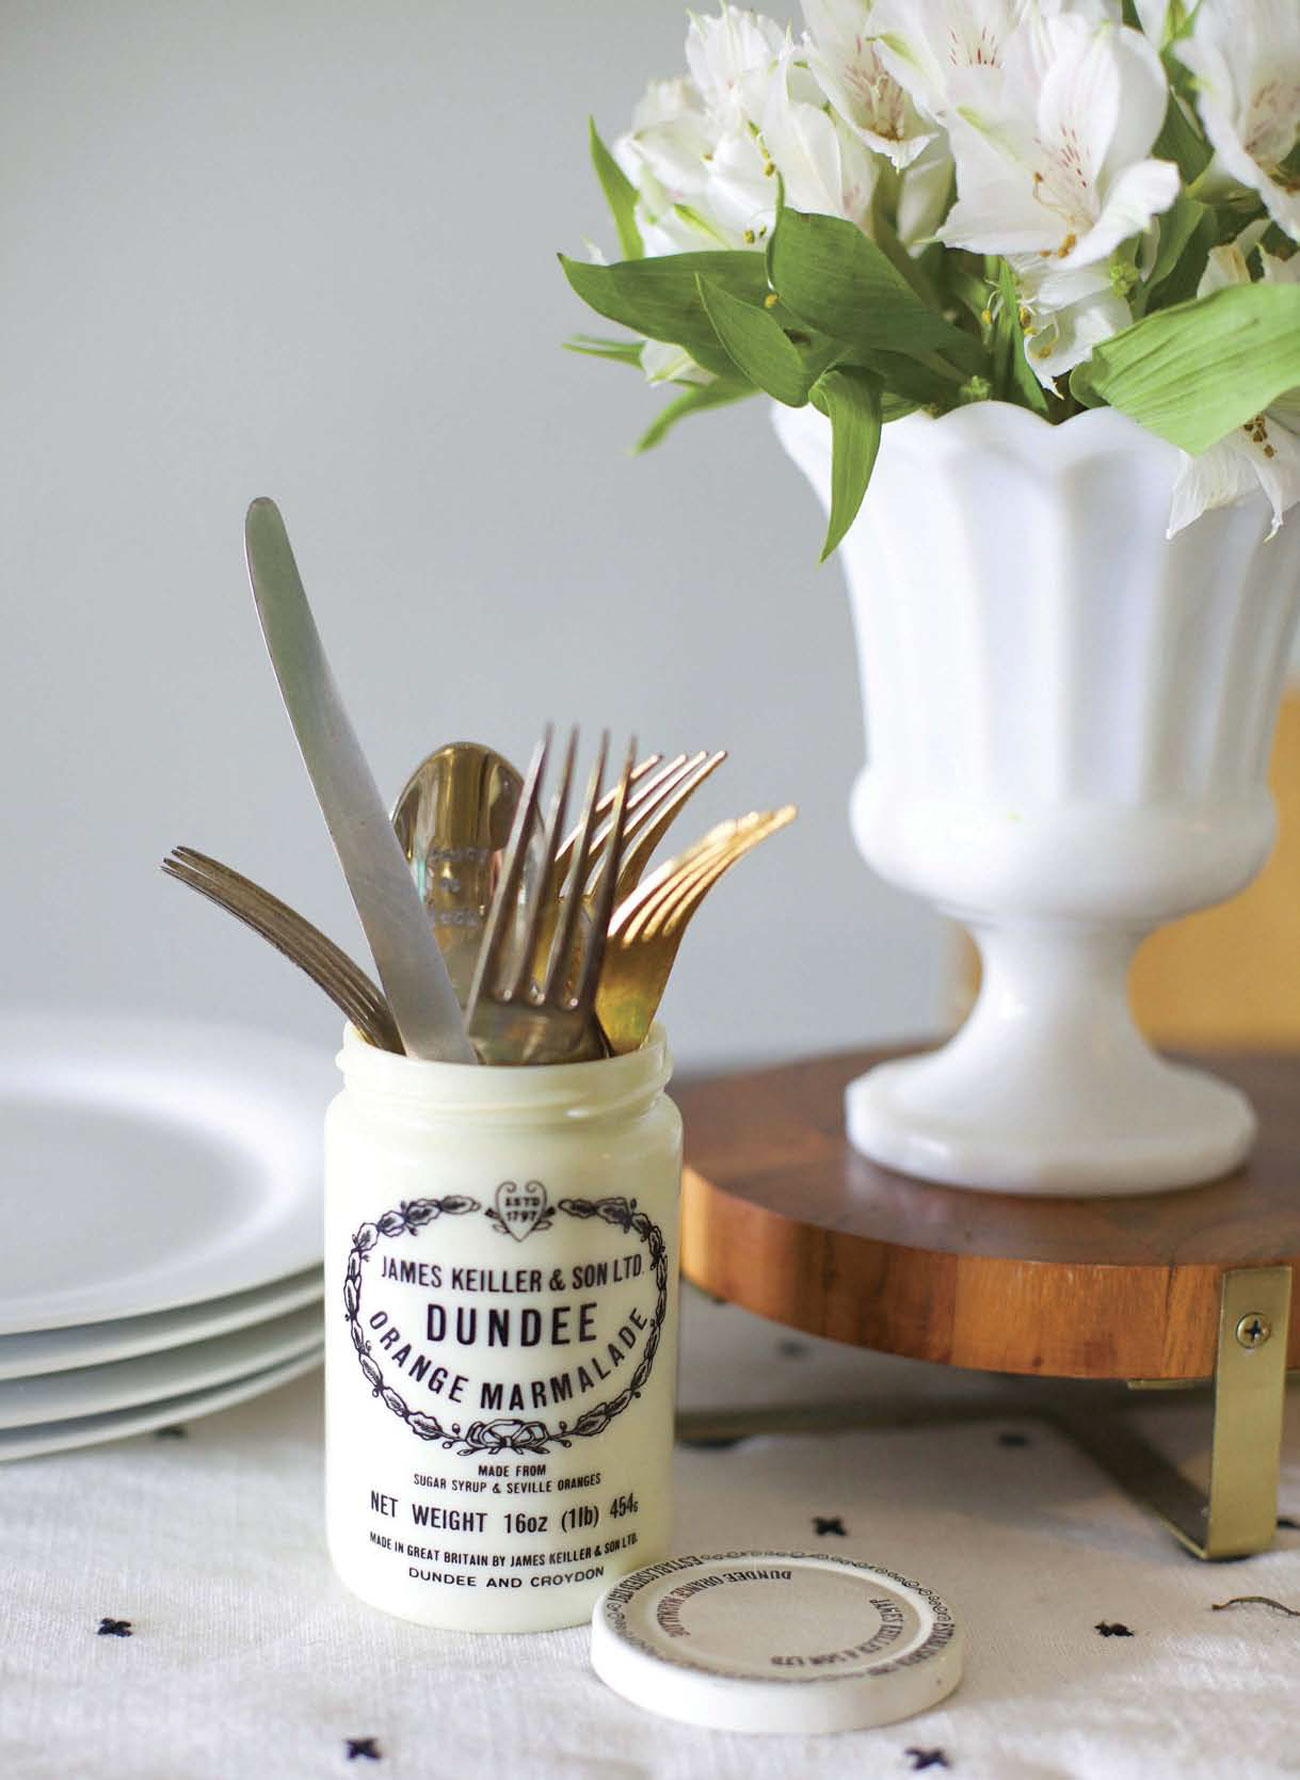 Keiller Dundee marmalade jar filled with silverware on a dining table next to white plates and a white vase of flowers.